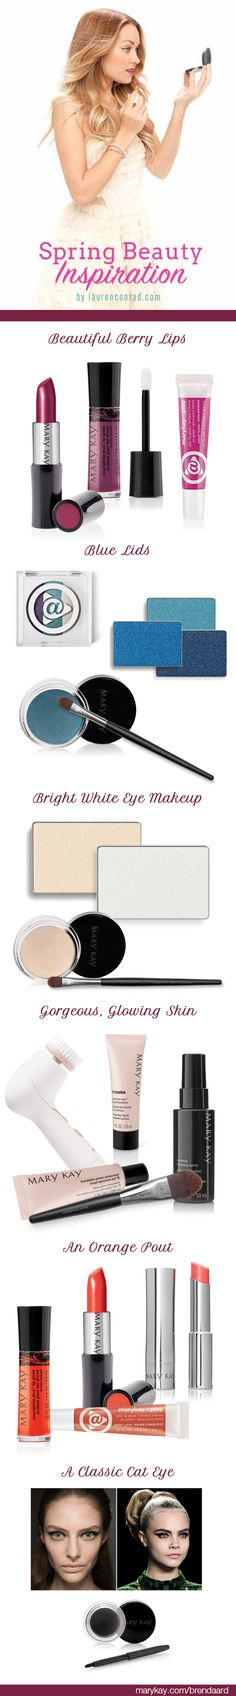 Spring Trends from LC and how to get them with Mary Kay cosmetics and skin care items. www.marykay.com/brendatheobald